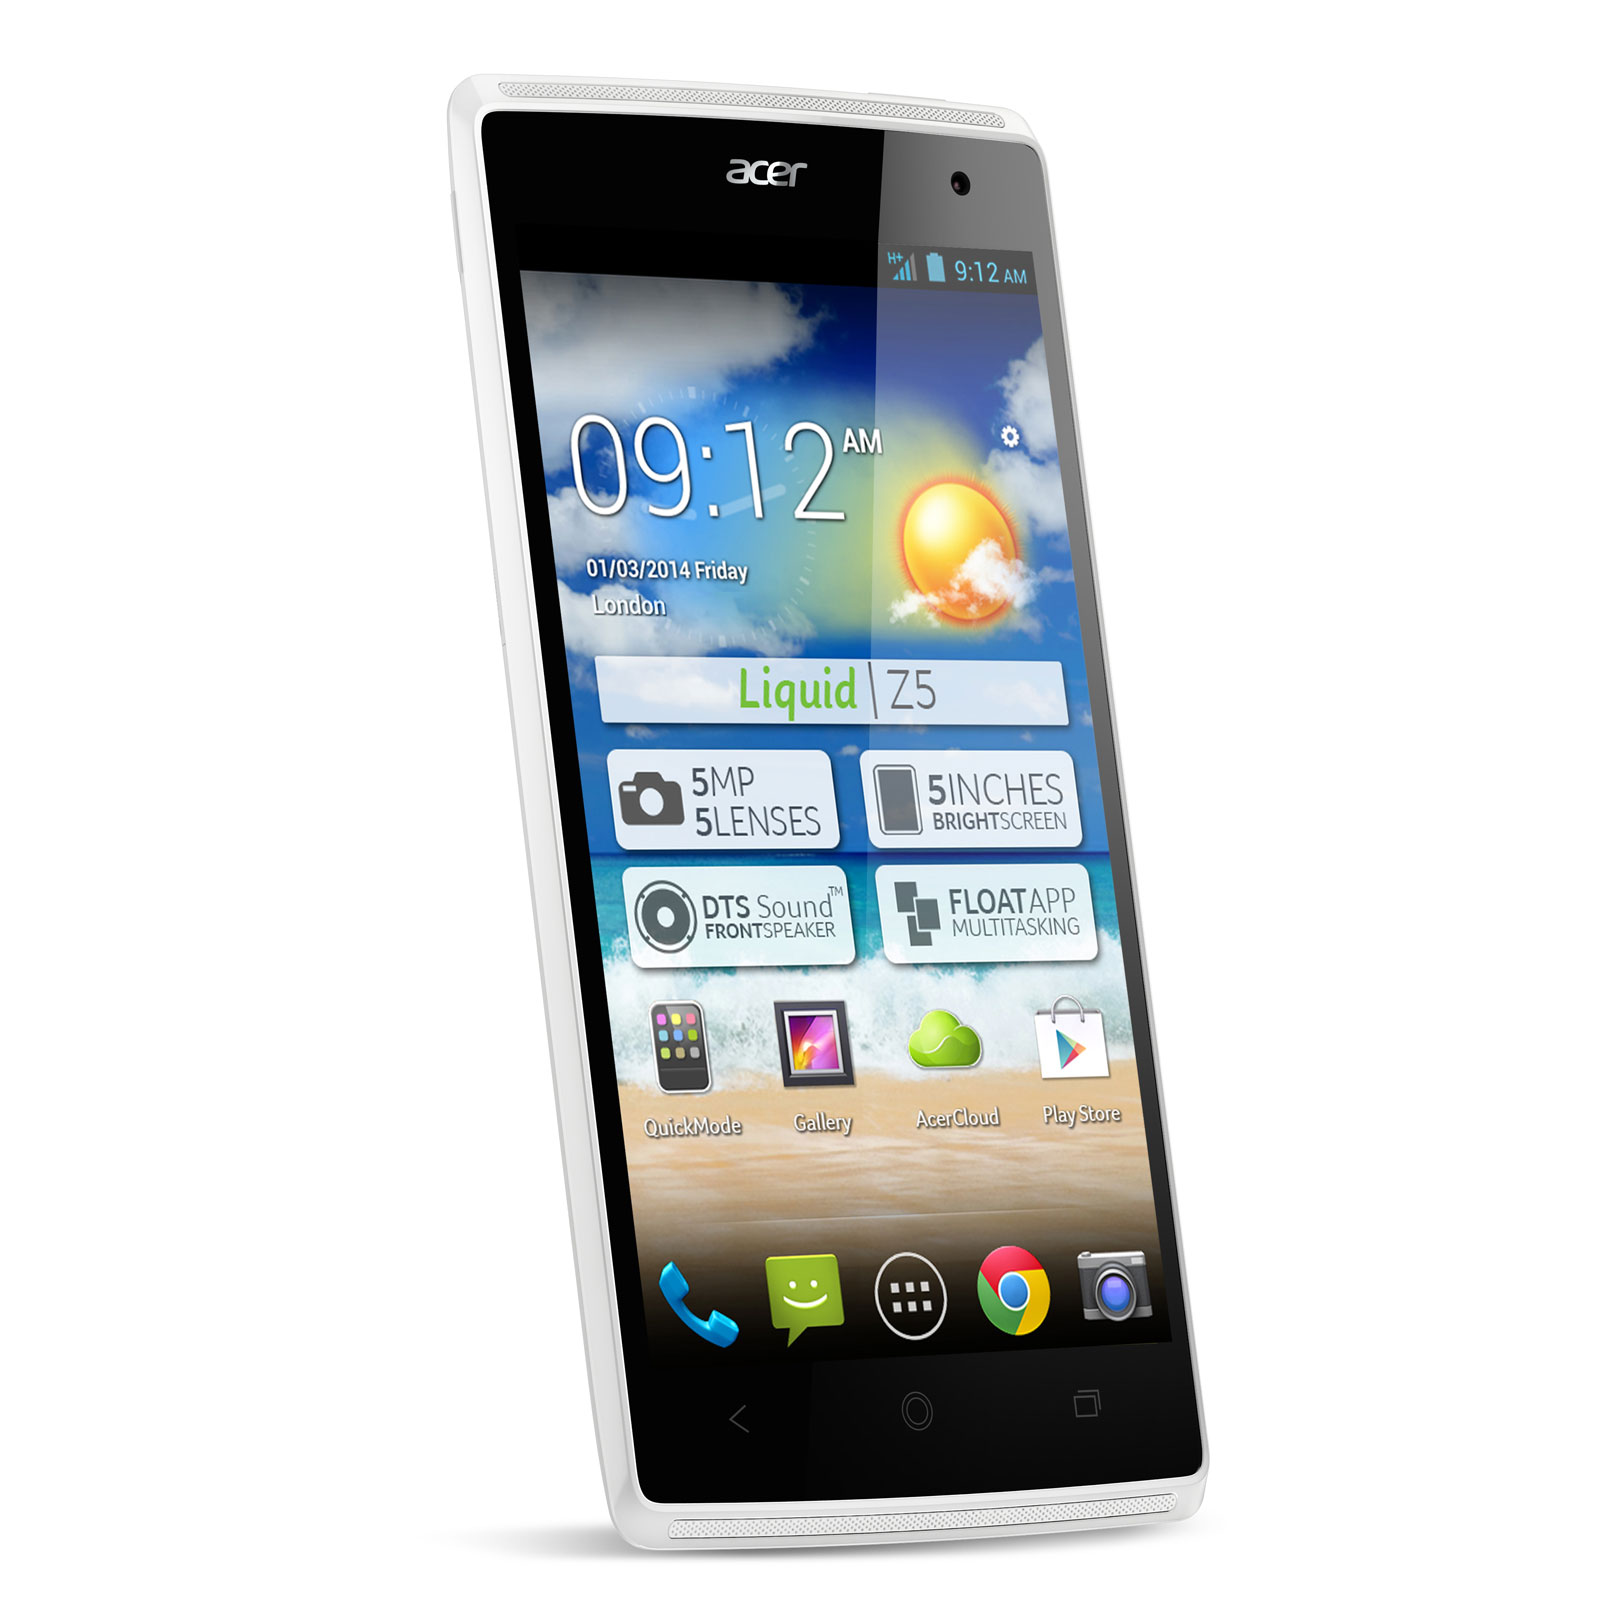 acer liquid z5 duo blanc mobile smartphone acer sur ldlc. Black Bedroom Furniture Sets. Home Design Ideas